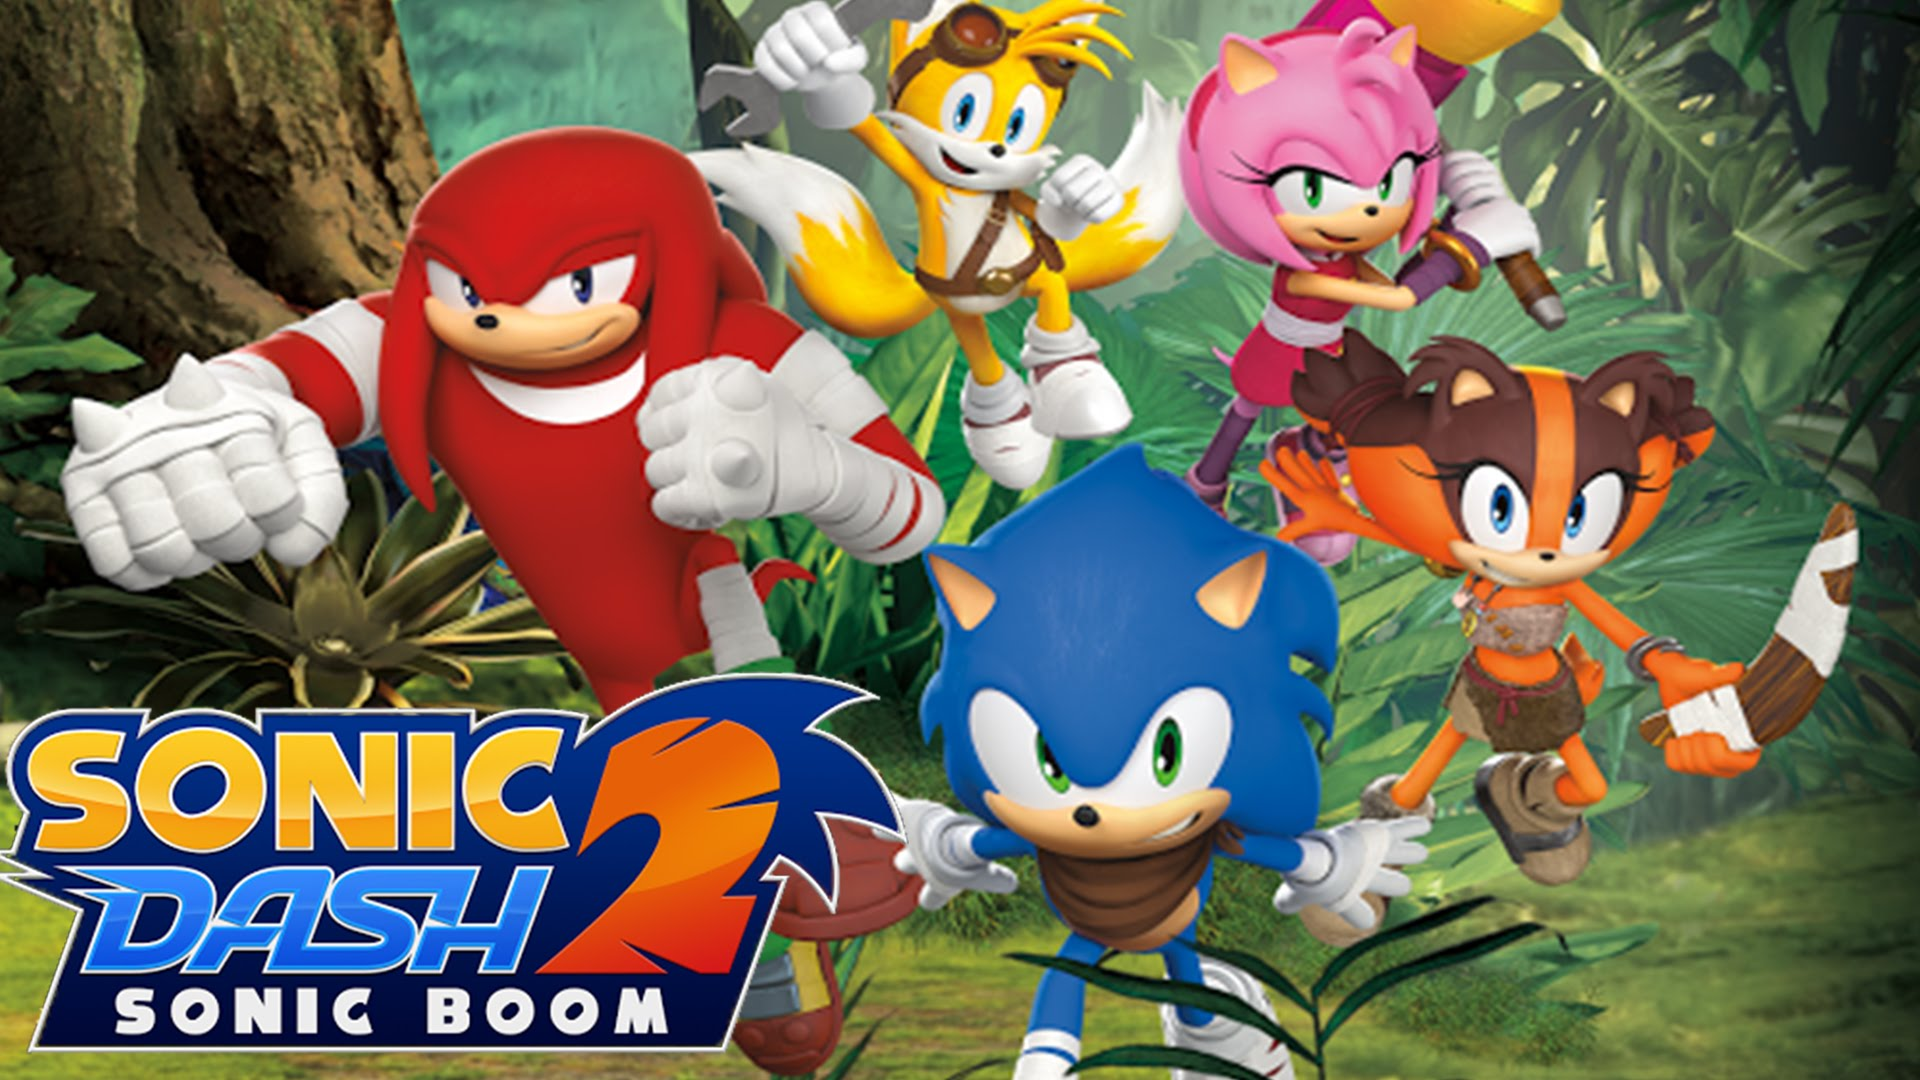 Sonic 2 download android - 1towatch com